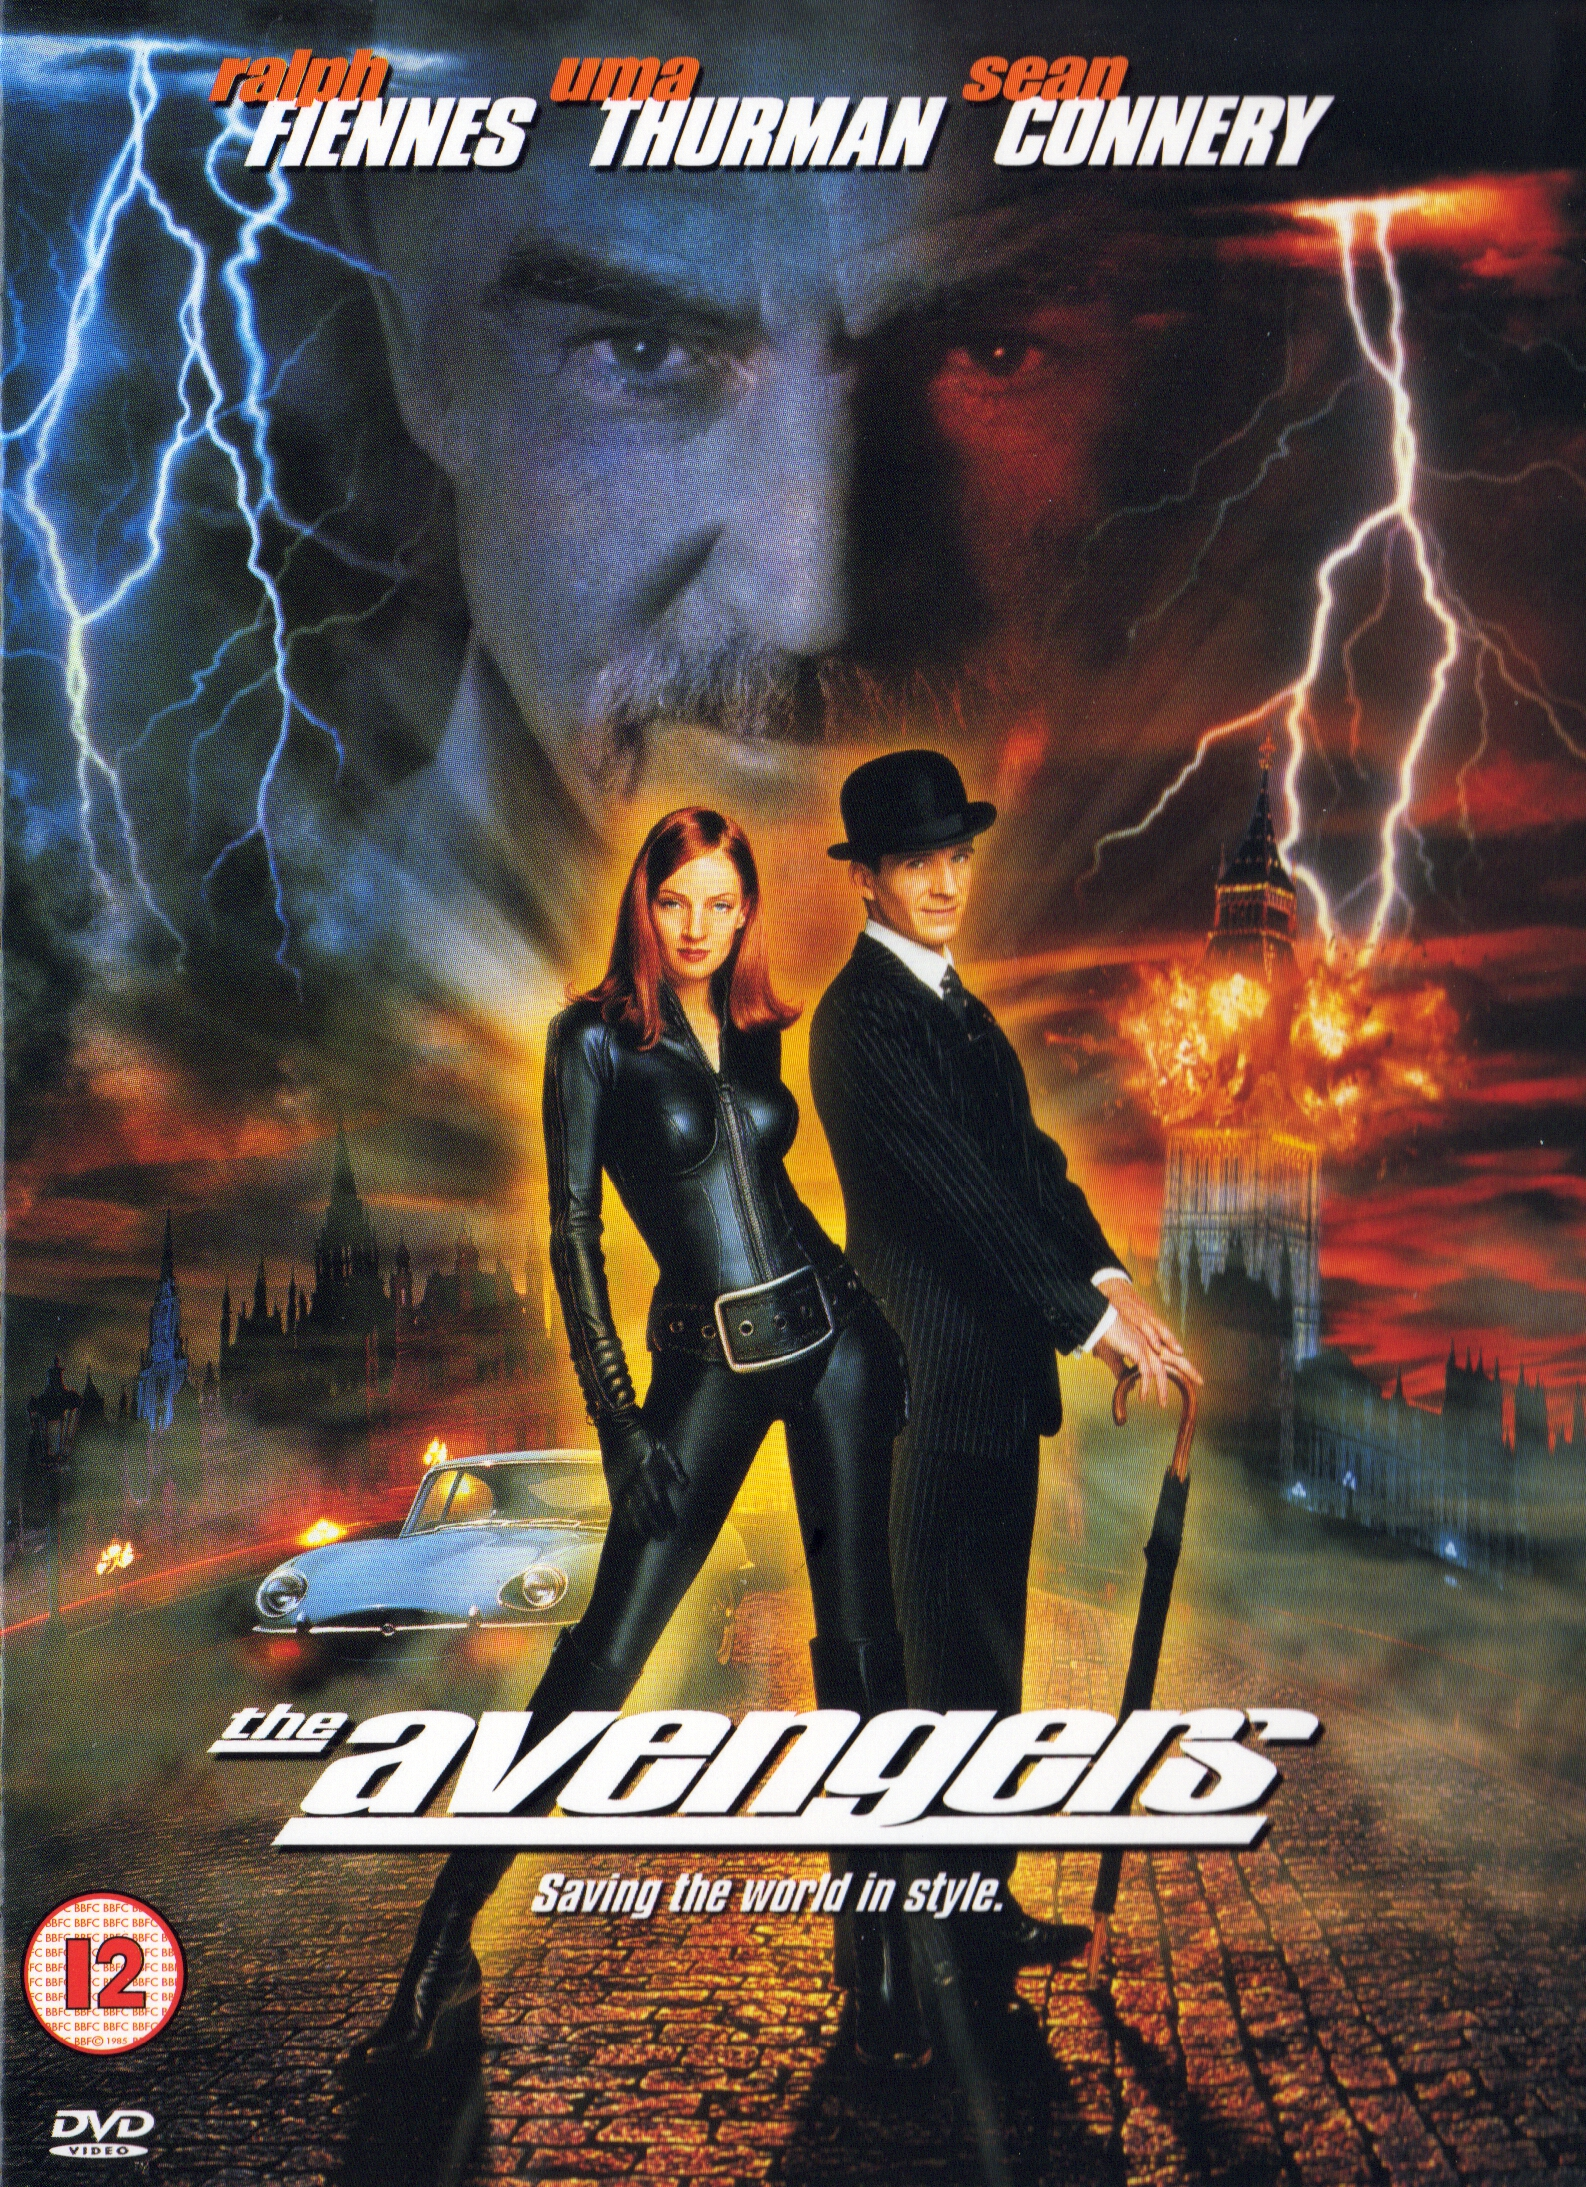 The Avengers (1998) DVD cover